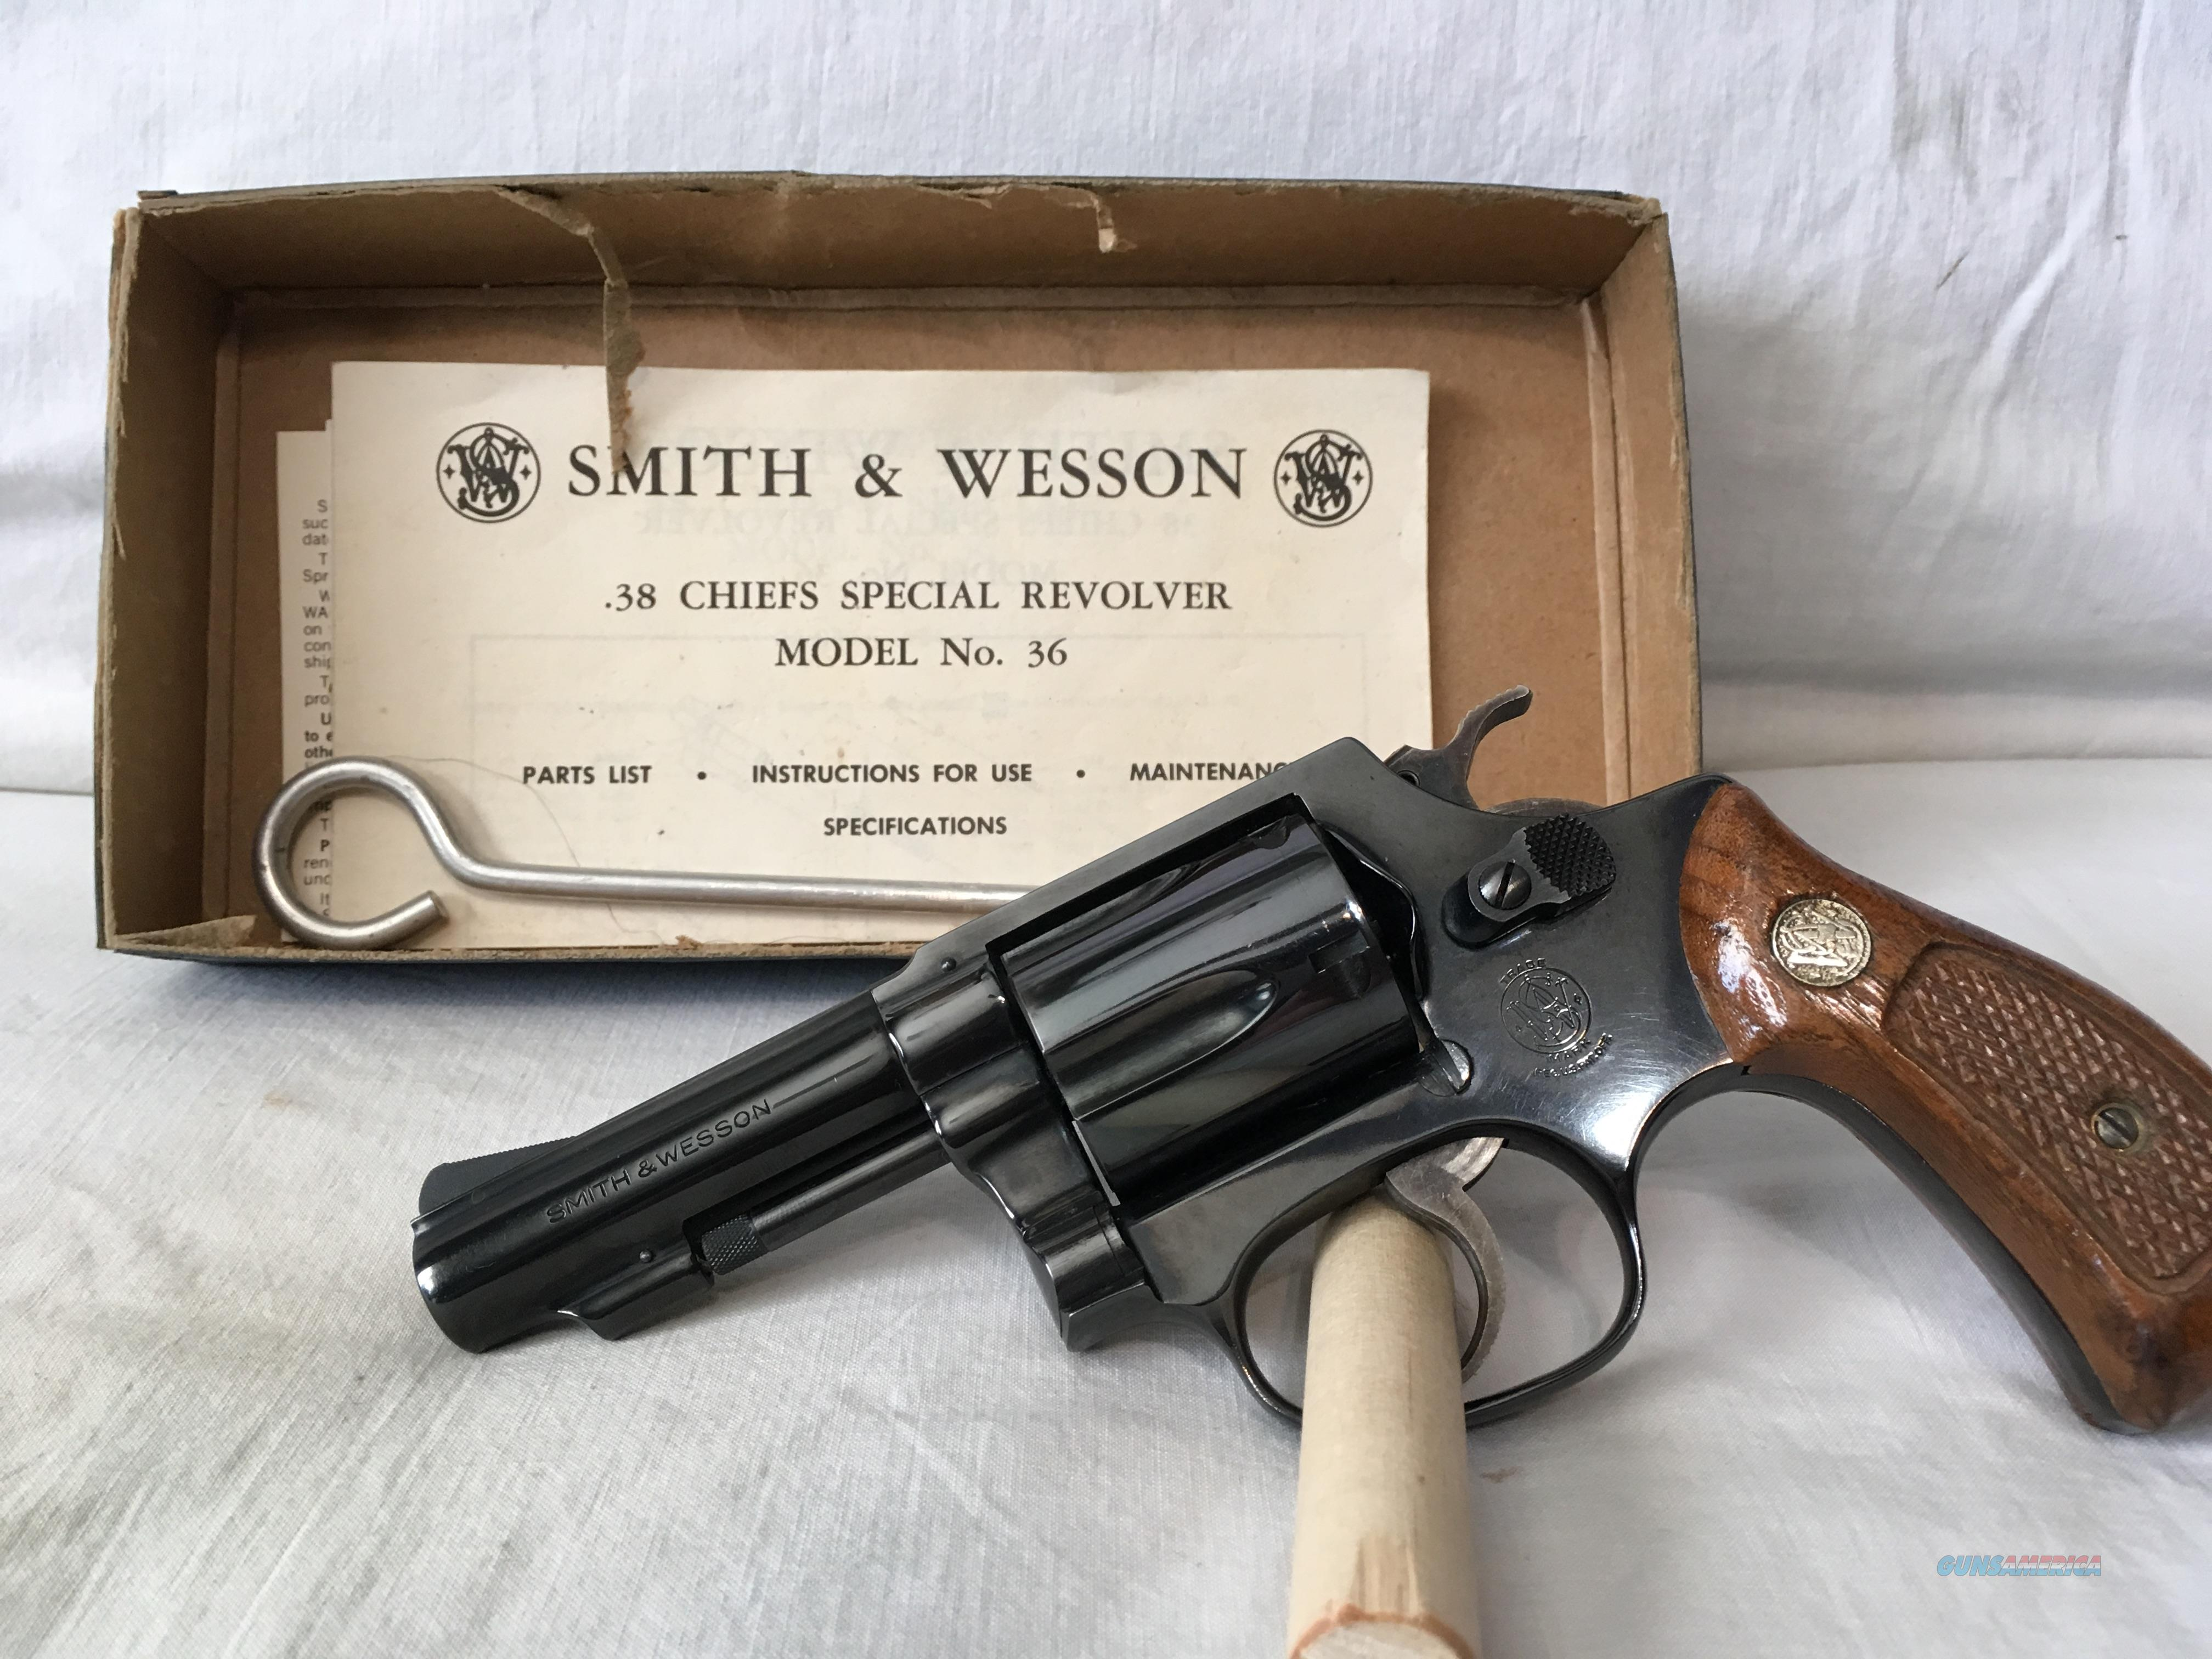 Smith Wesson 38 Chiefs Special 77 78 5 Shot For Sale And Model 29 Parts Diagram On Mosin Nagant 3 Barrel Guns